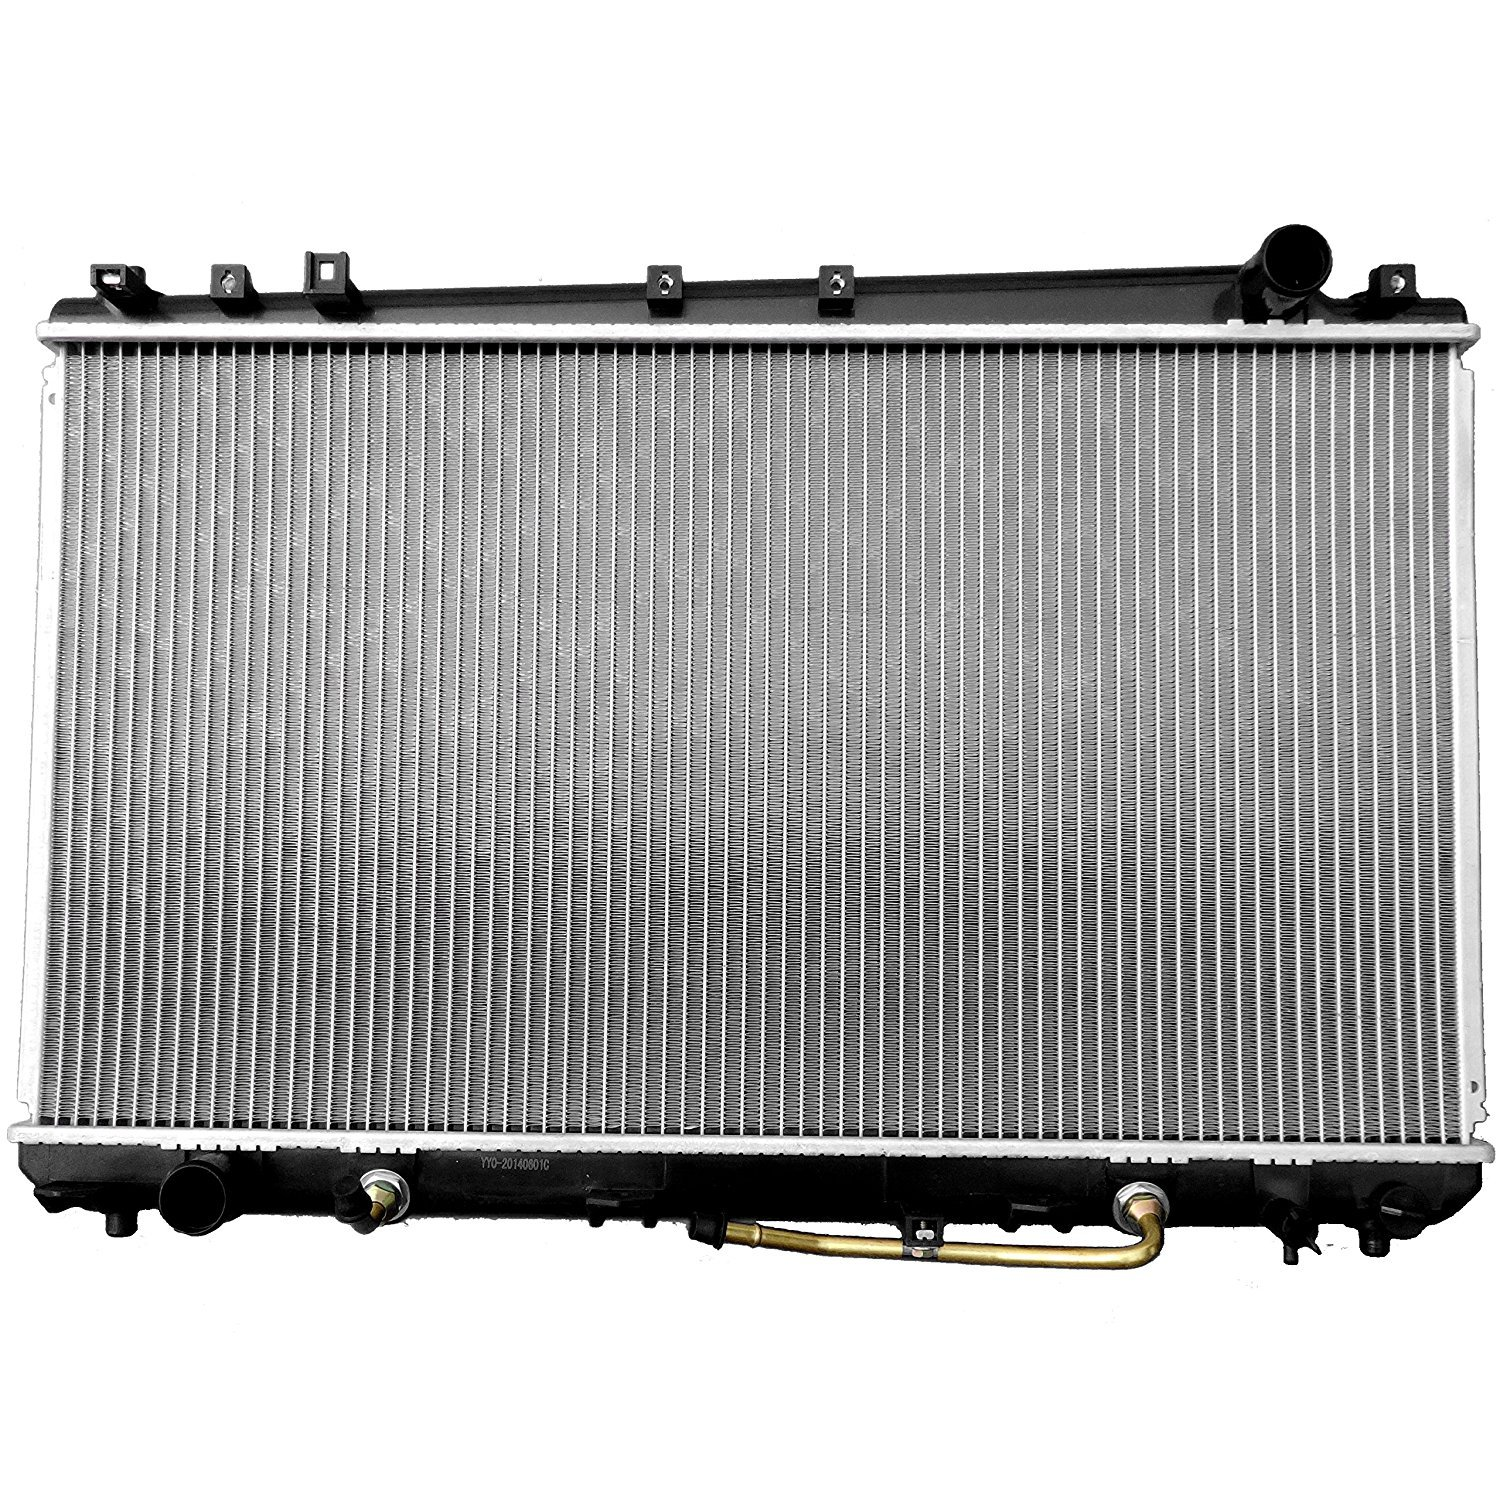 ECCPP Radiator LR2324 for 2001-2004 Toyota Avalon XL/XLD V6 3.0L by ECCPP